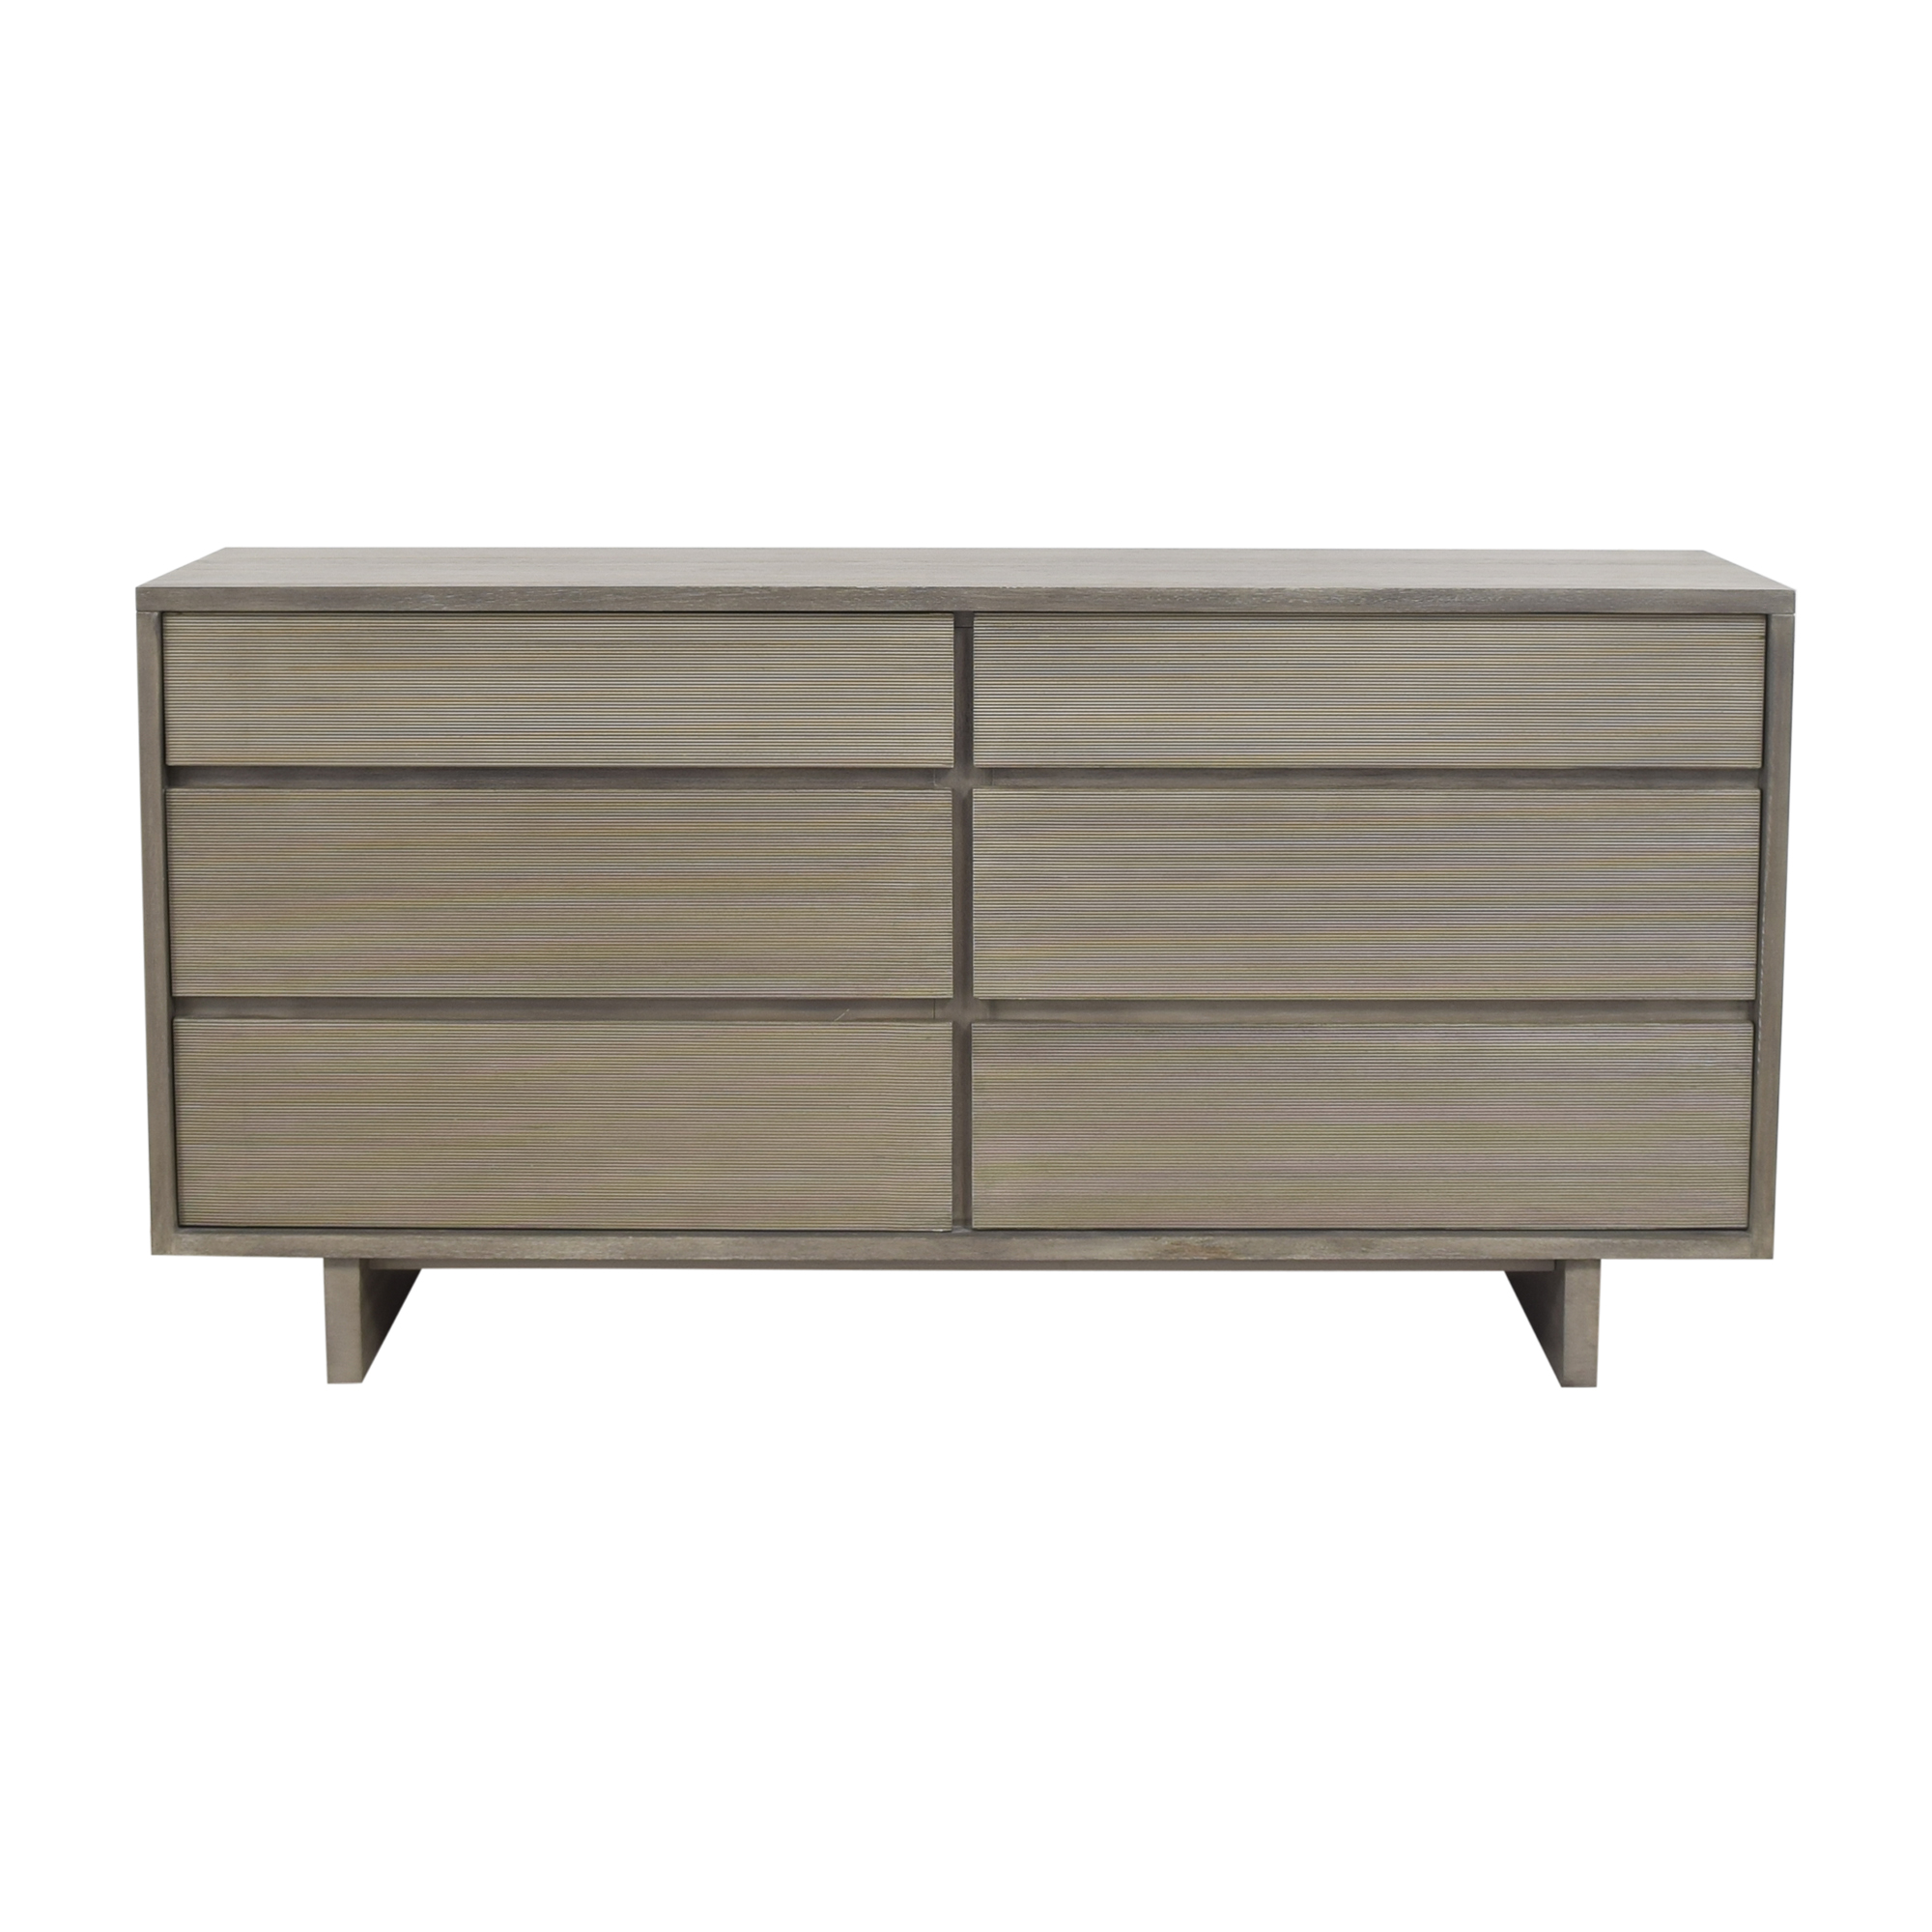 West Elm Arbor Textured Six Drawer Dresser sale